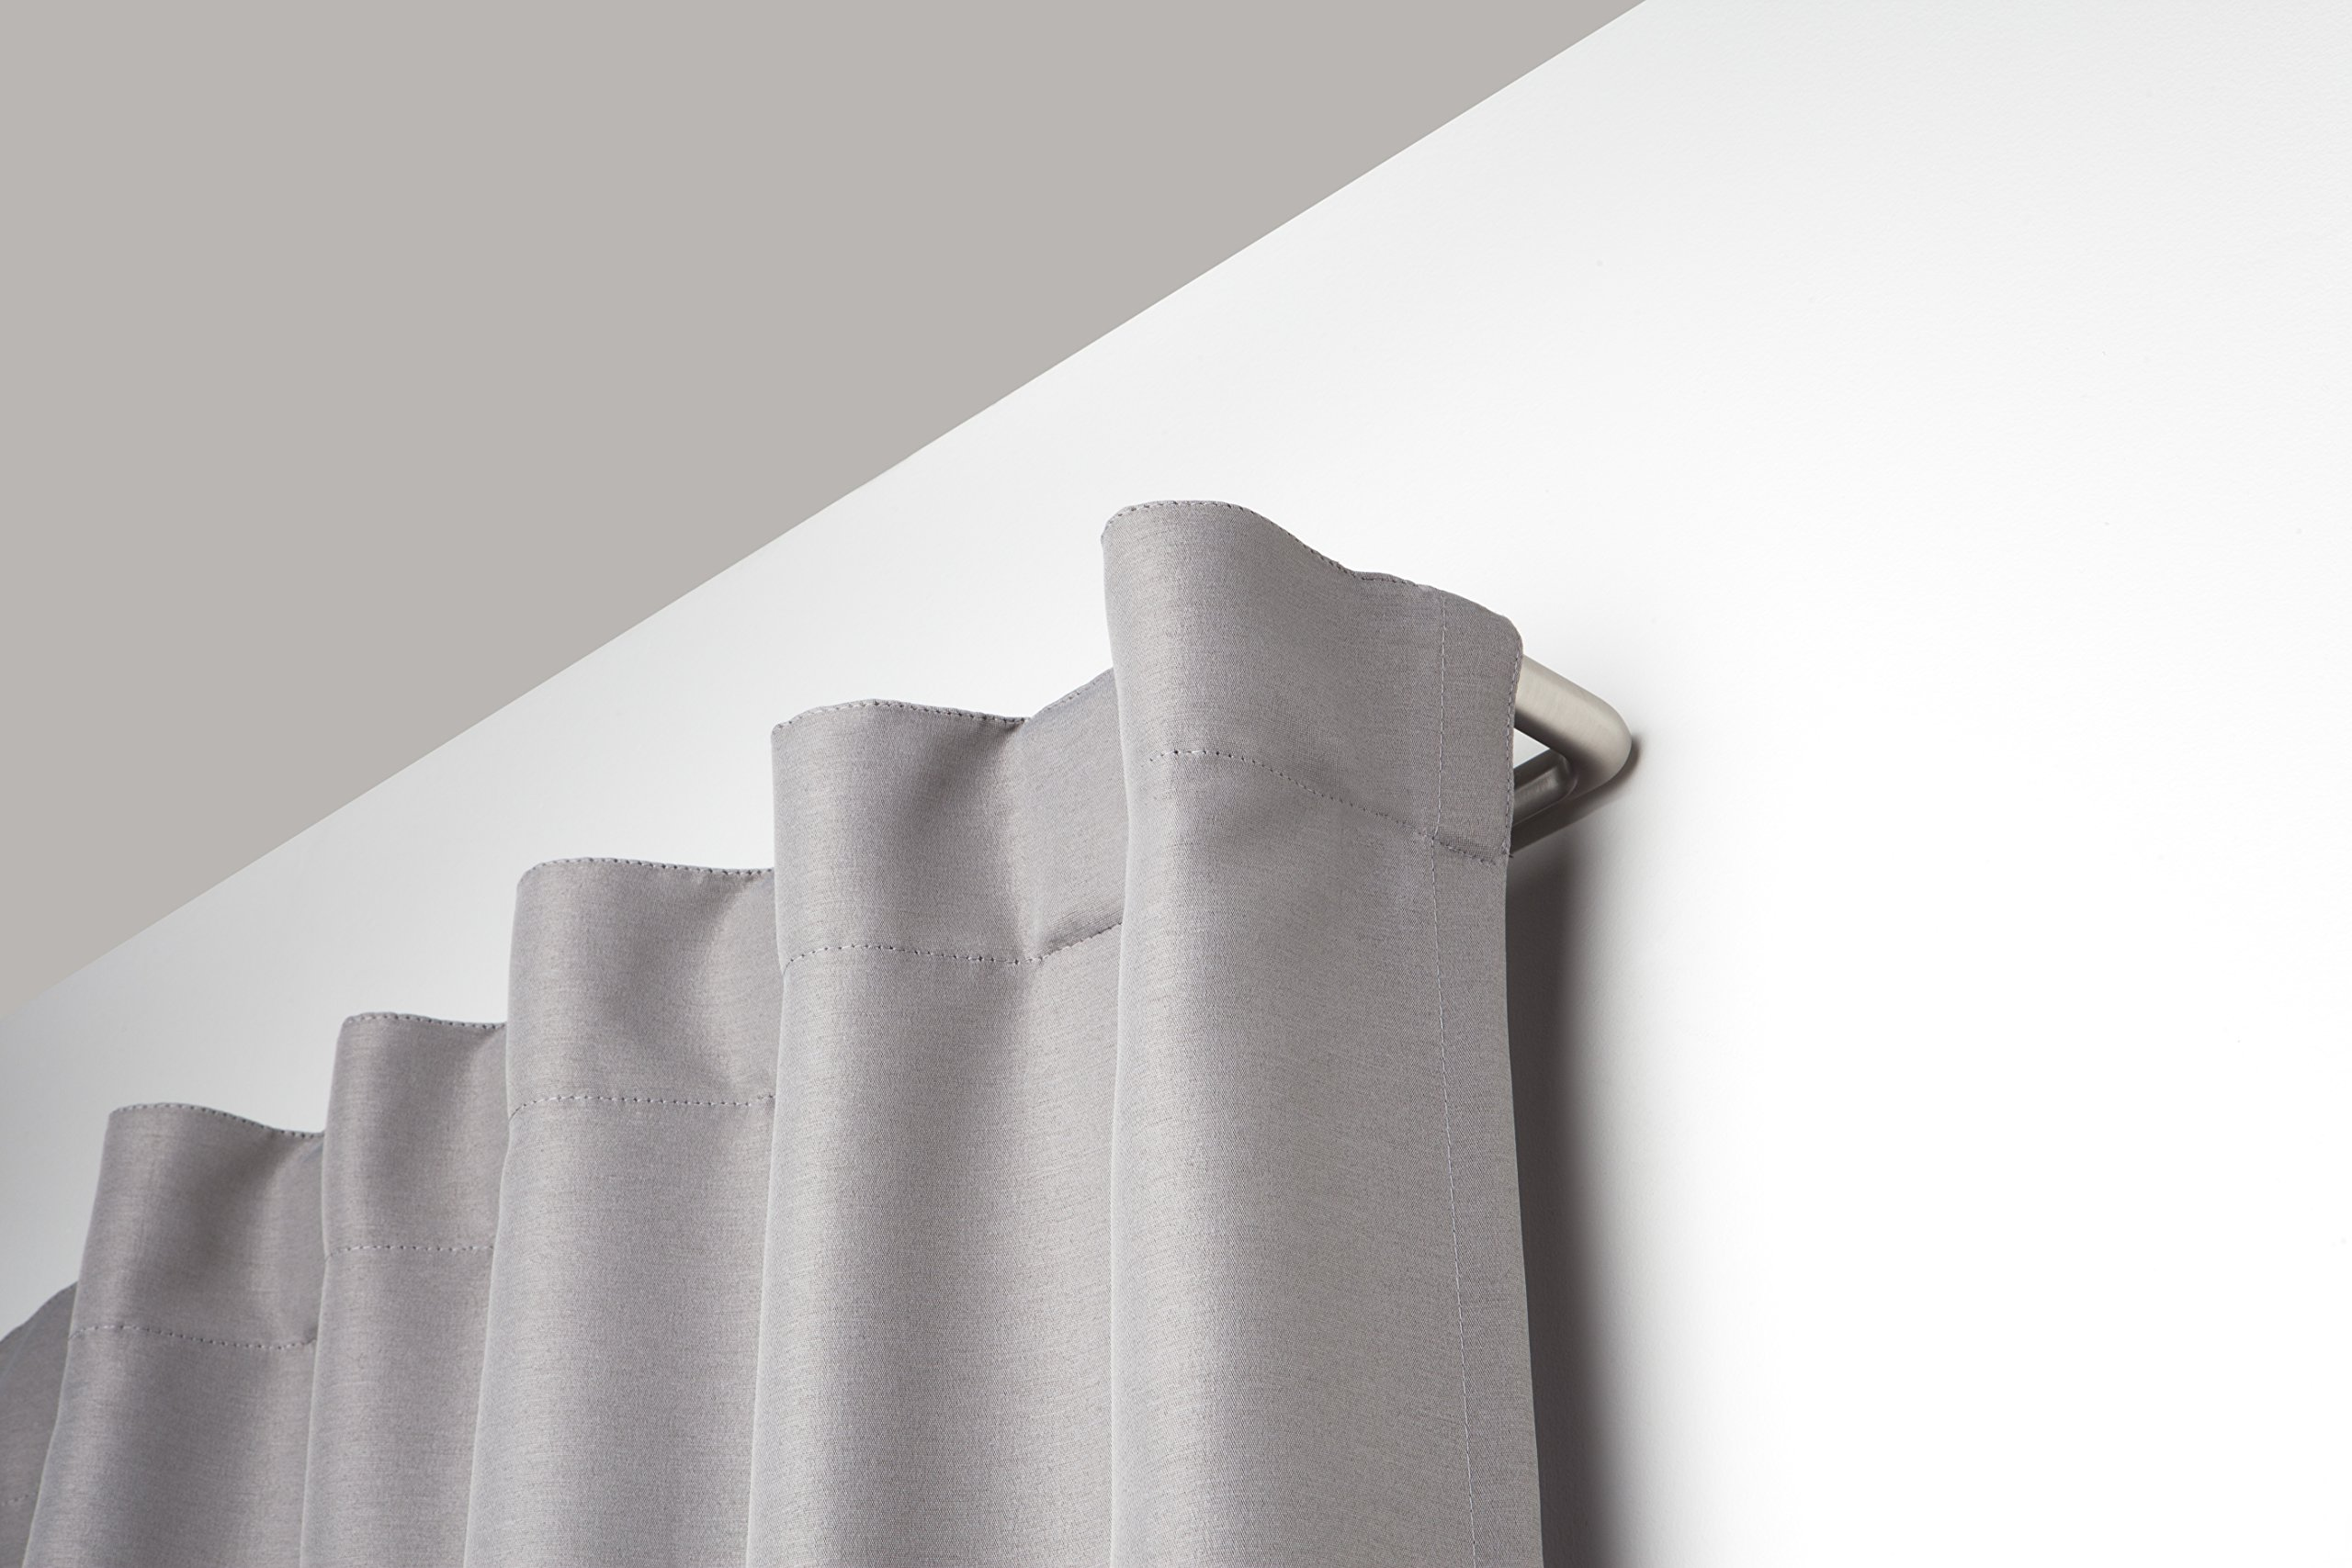 Umbra Twilight Double Curtain Rod Set Wrap Around Design is Ideal for Blackout